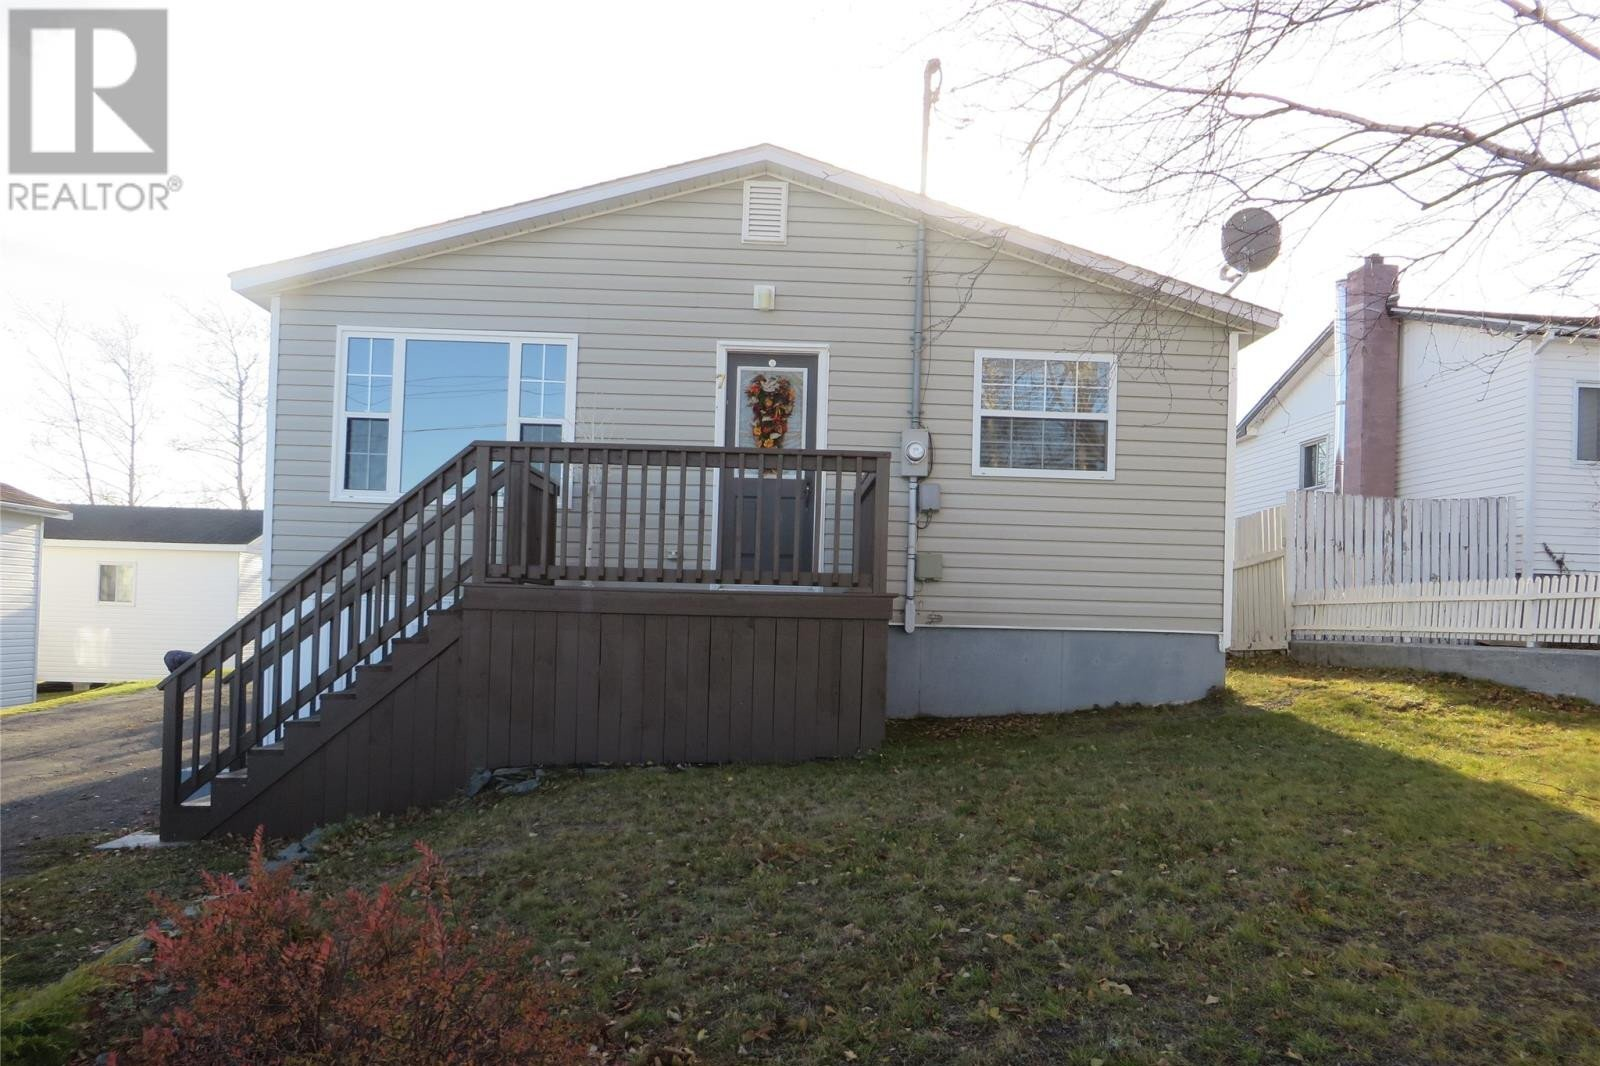 House for sale at 7 Brooks Ave Grand Falls-windsor Newfoundland - MLS: 1223655